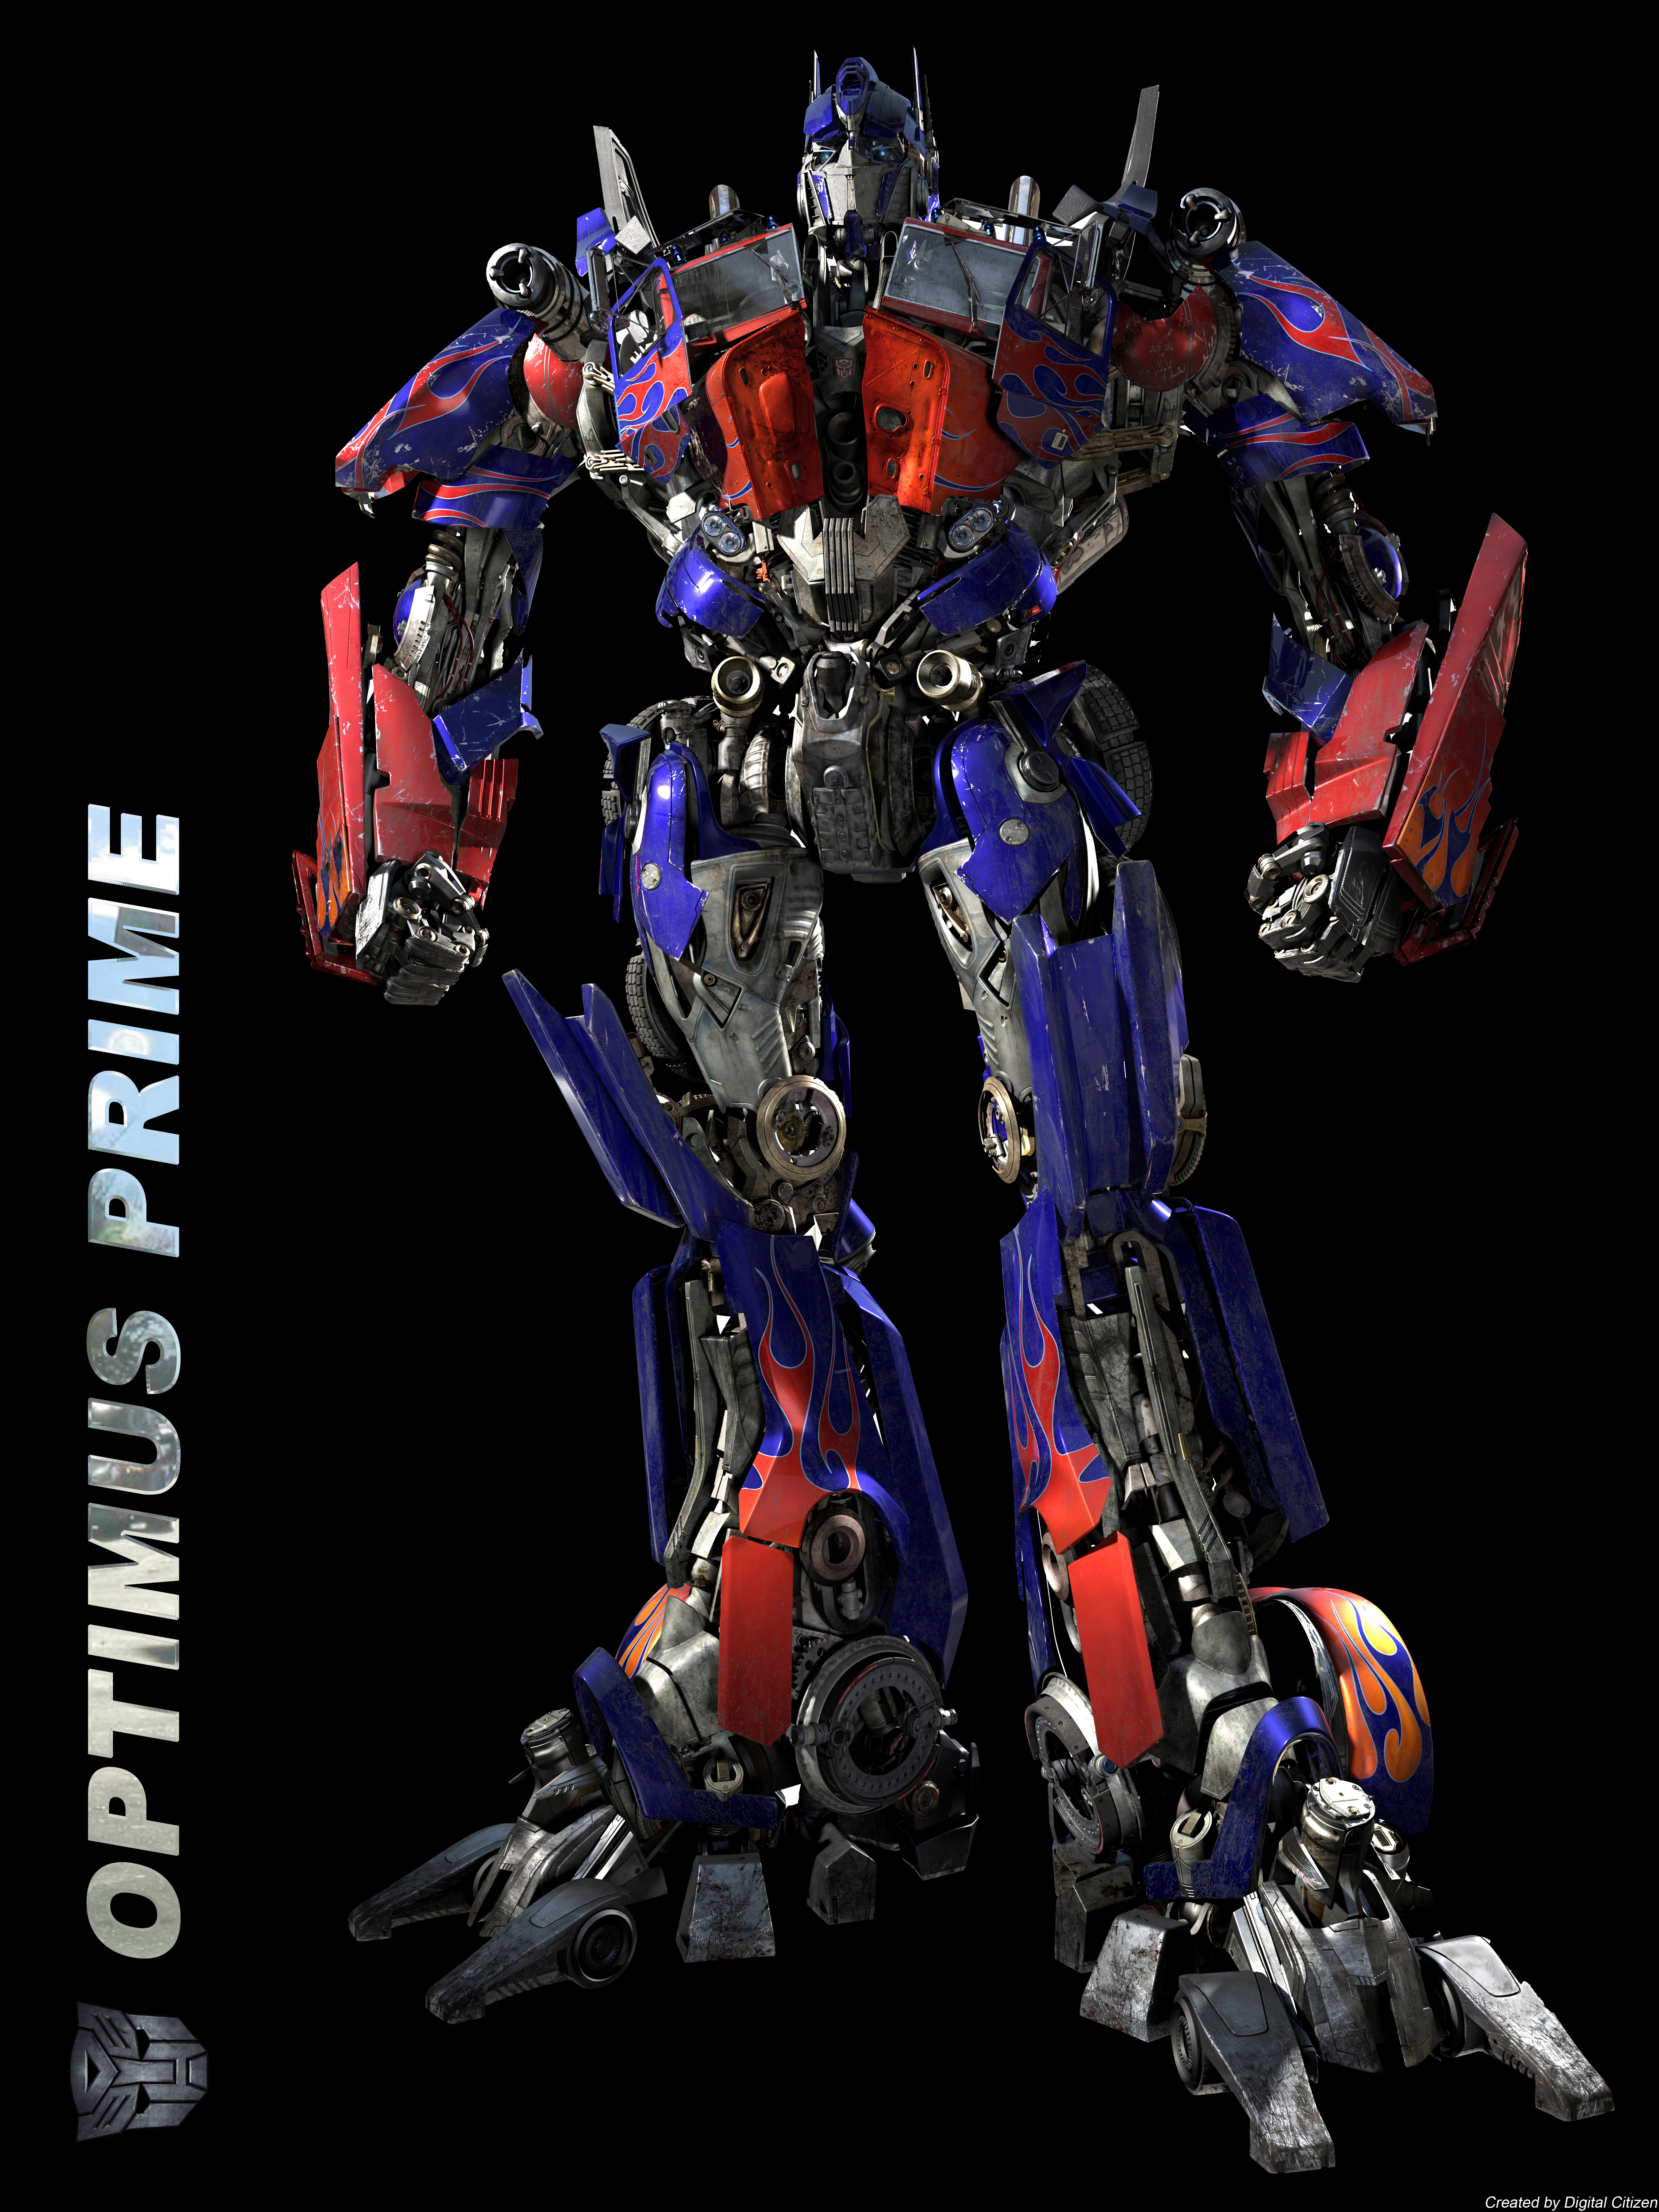 18 X 24 Printable Posters Of Optimus Prime Megatron And